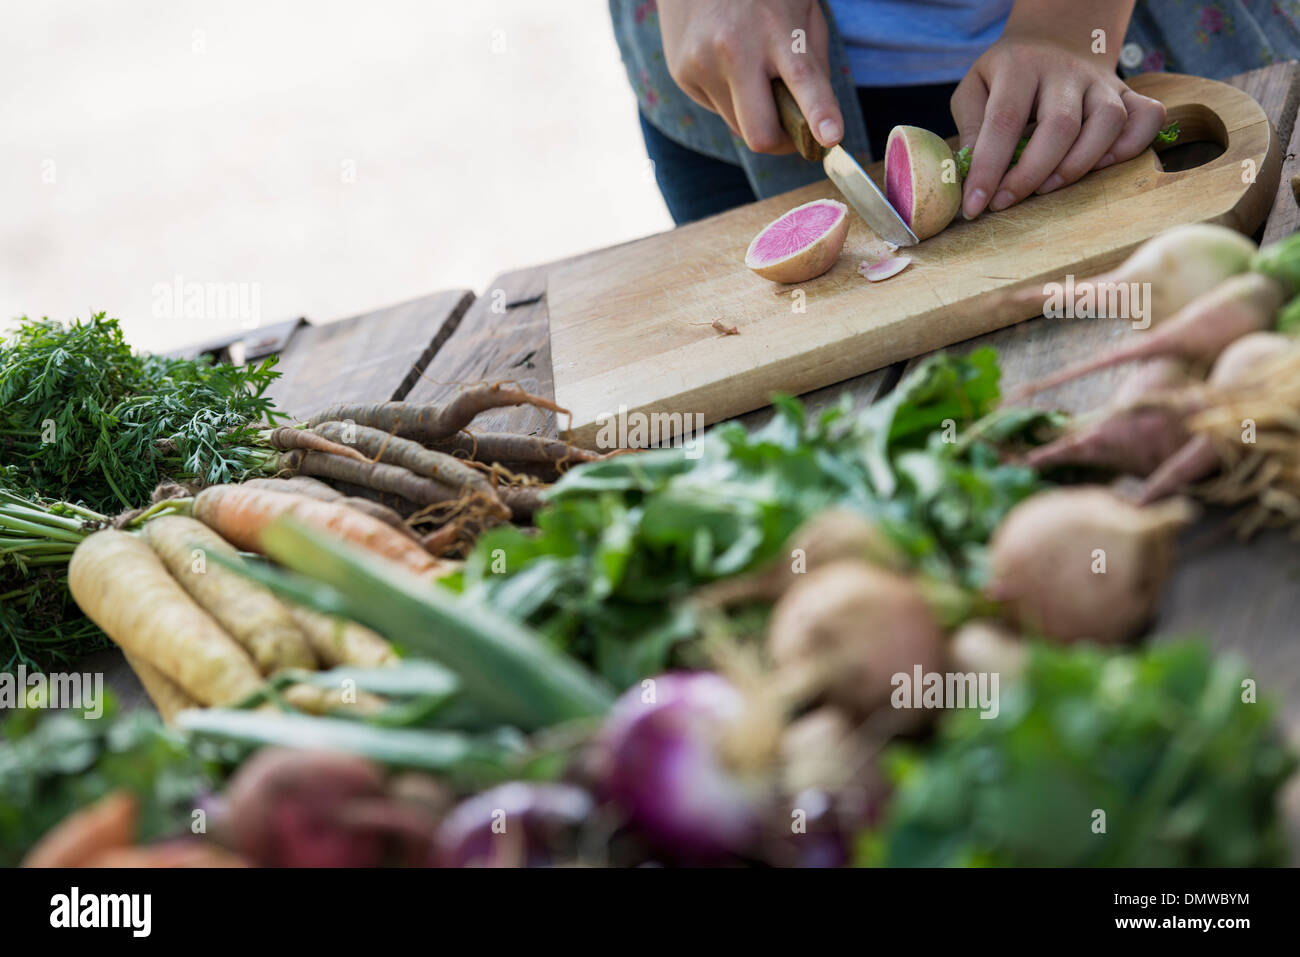 A person chopping freshly picked vegetables and fruits. - Stock Image